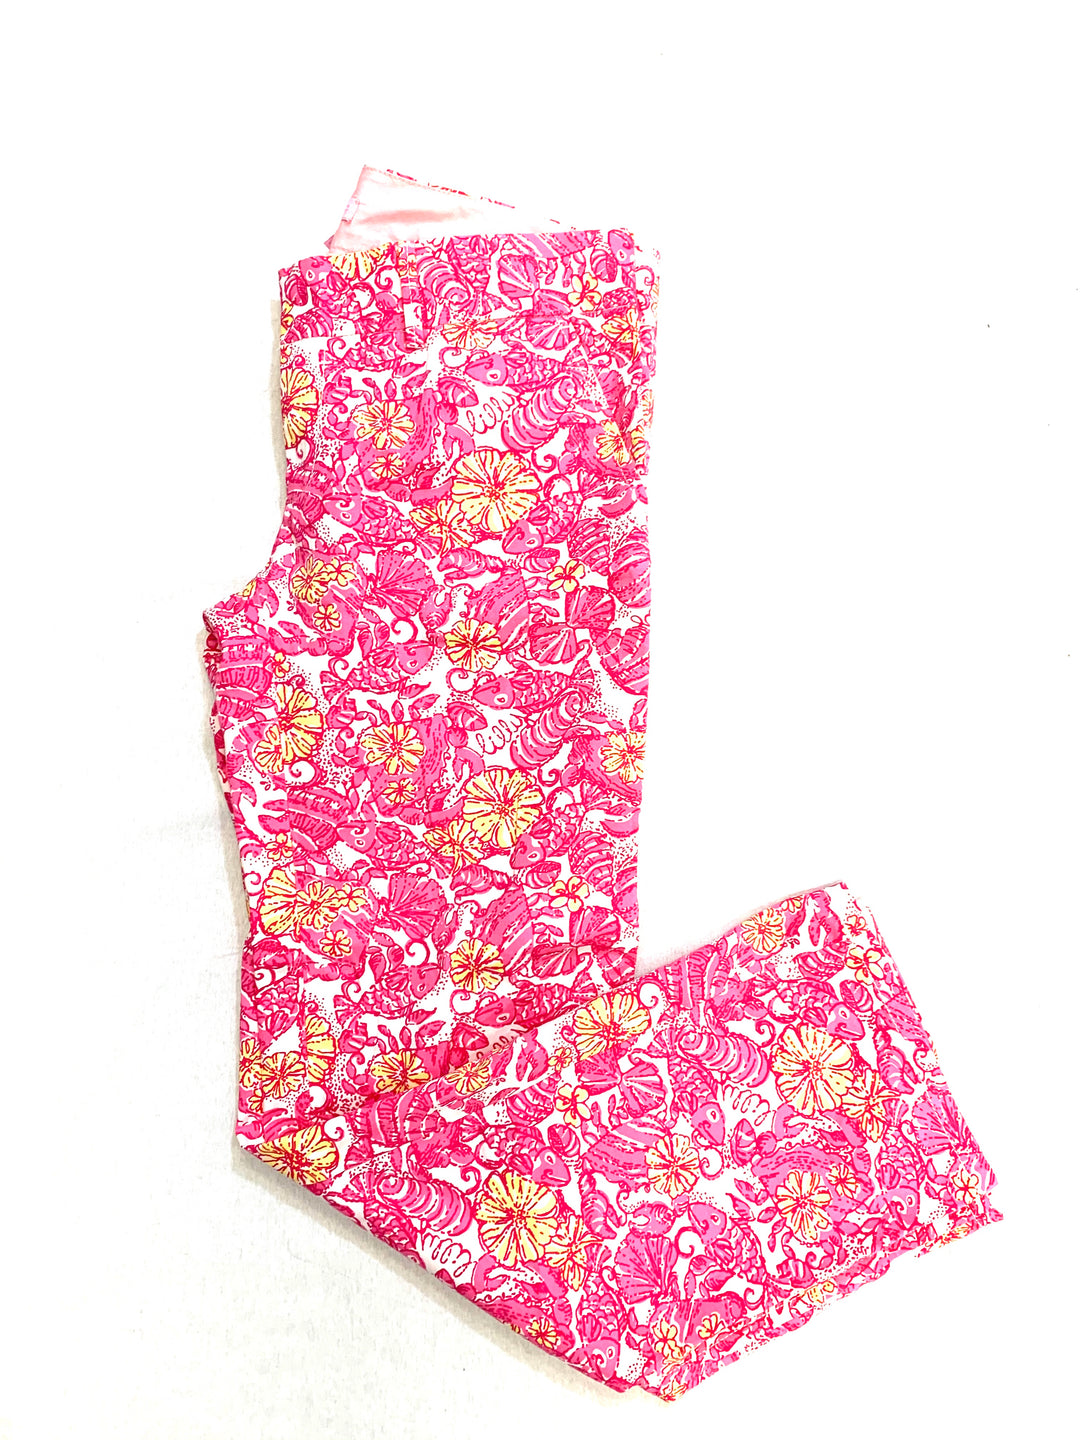 Primary Photo - BRAND: LILLY PULITZER <BR>STYLE: PANTS <BR>COLOR: MULTI <BR>SIZE: 4 <BR>OTHER INFO: PINK YELLOW <BR>SKU: 223-22364-34713